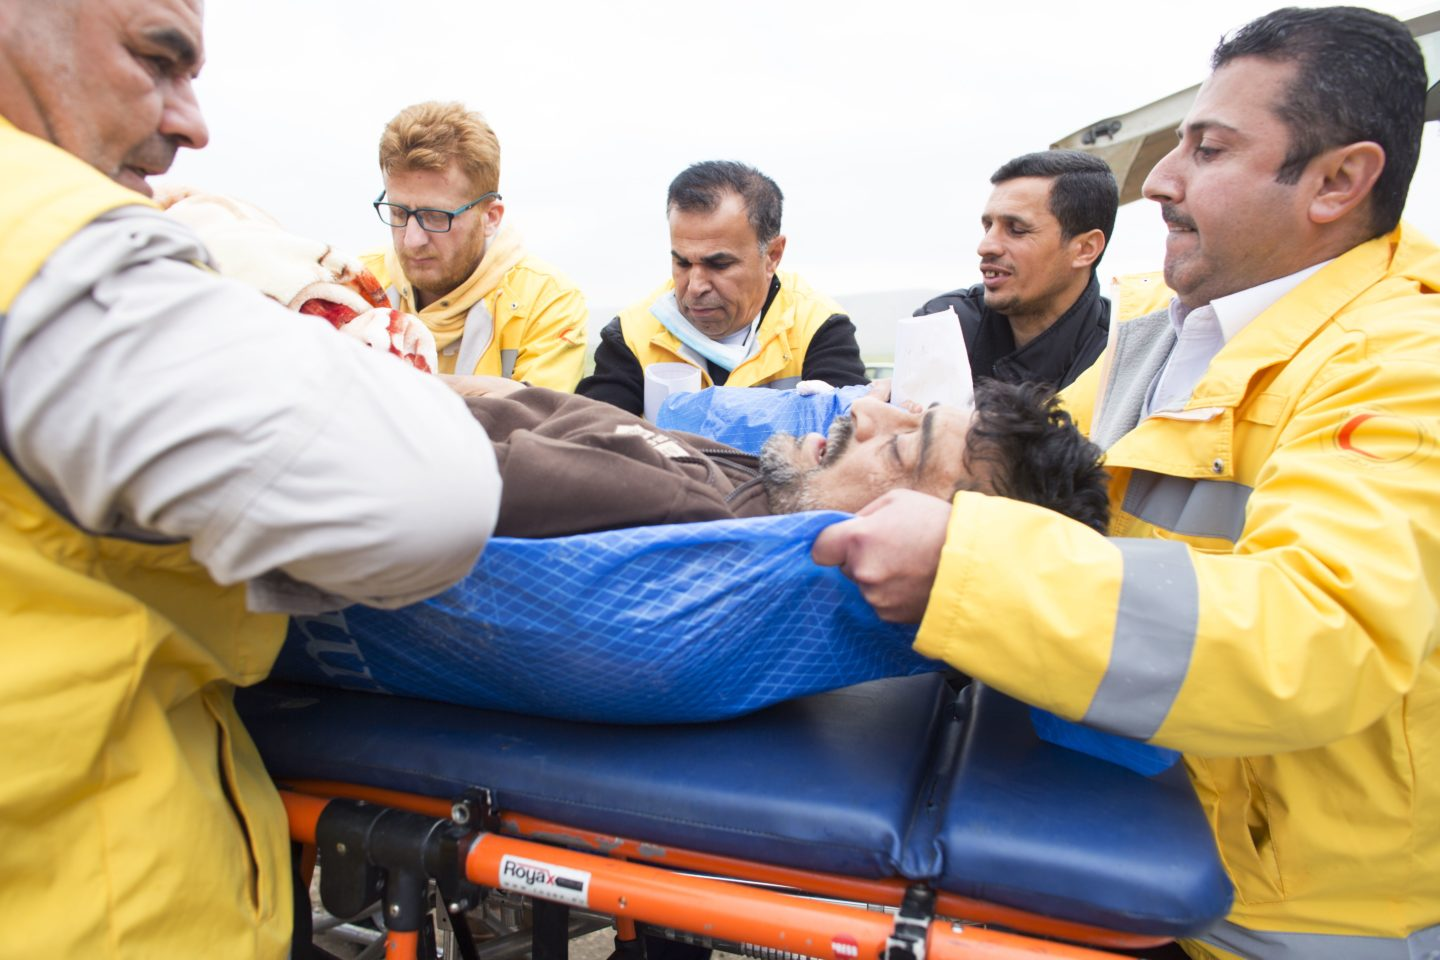 Injured man from Mosul being put into ambulance